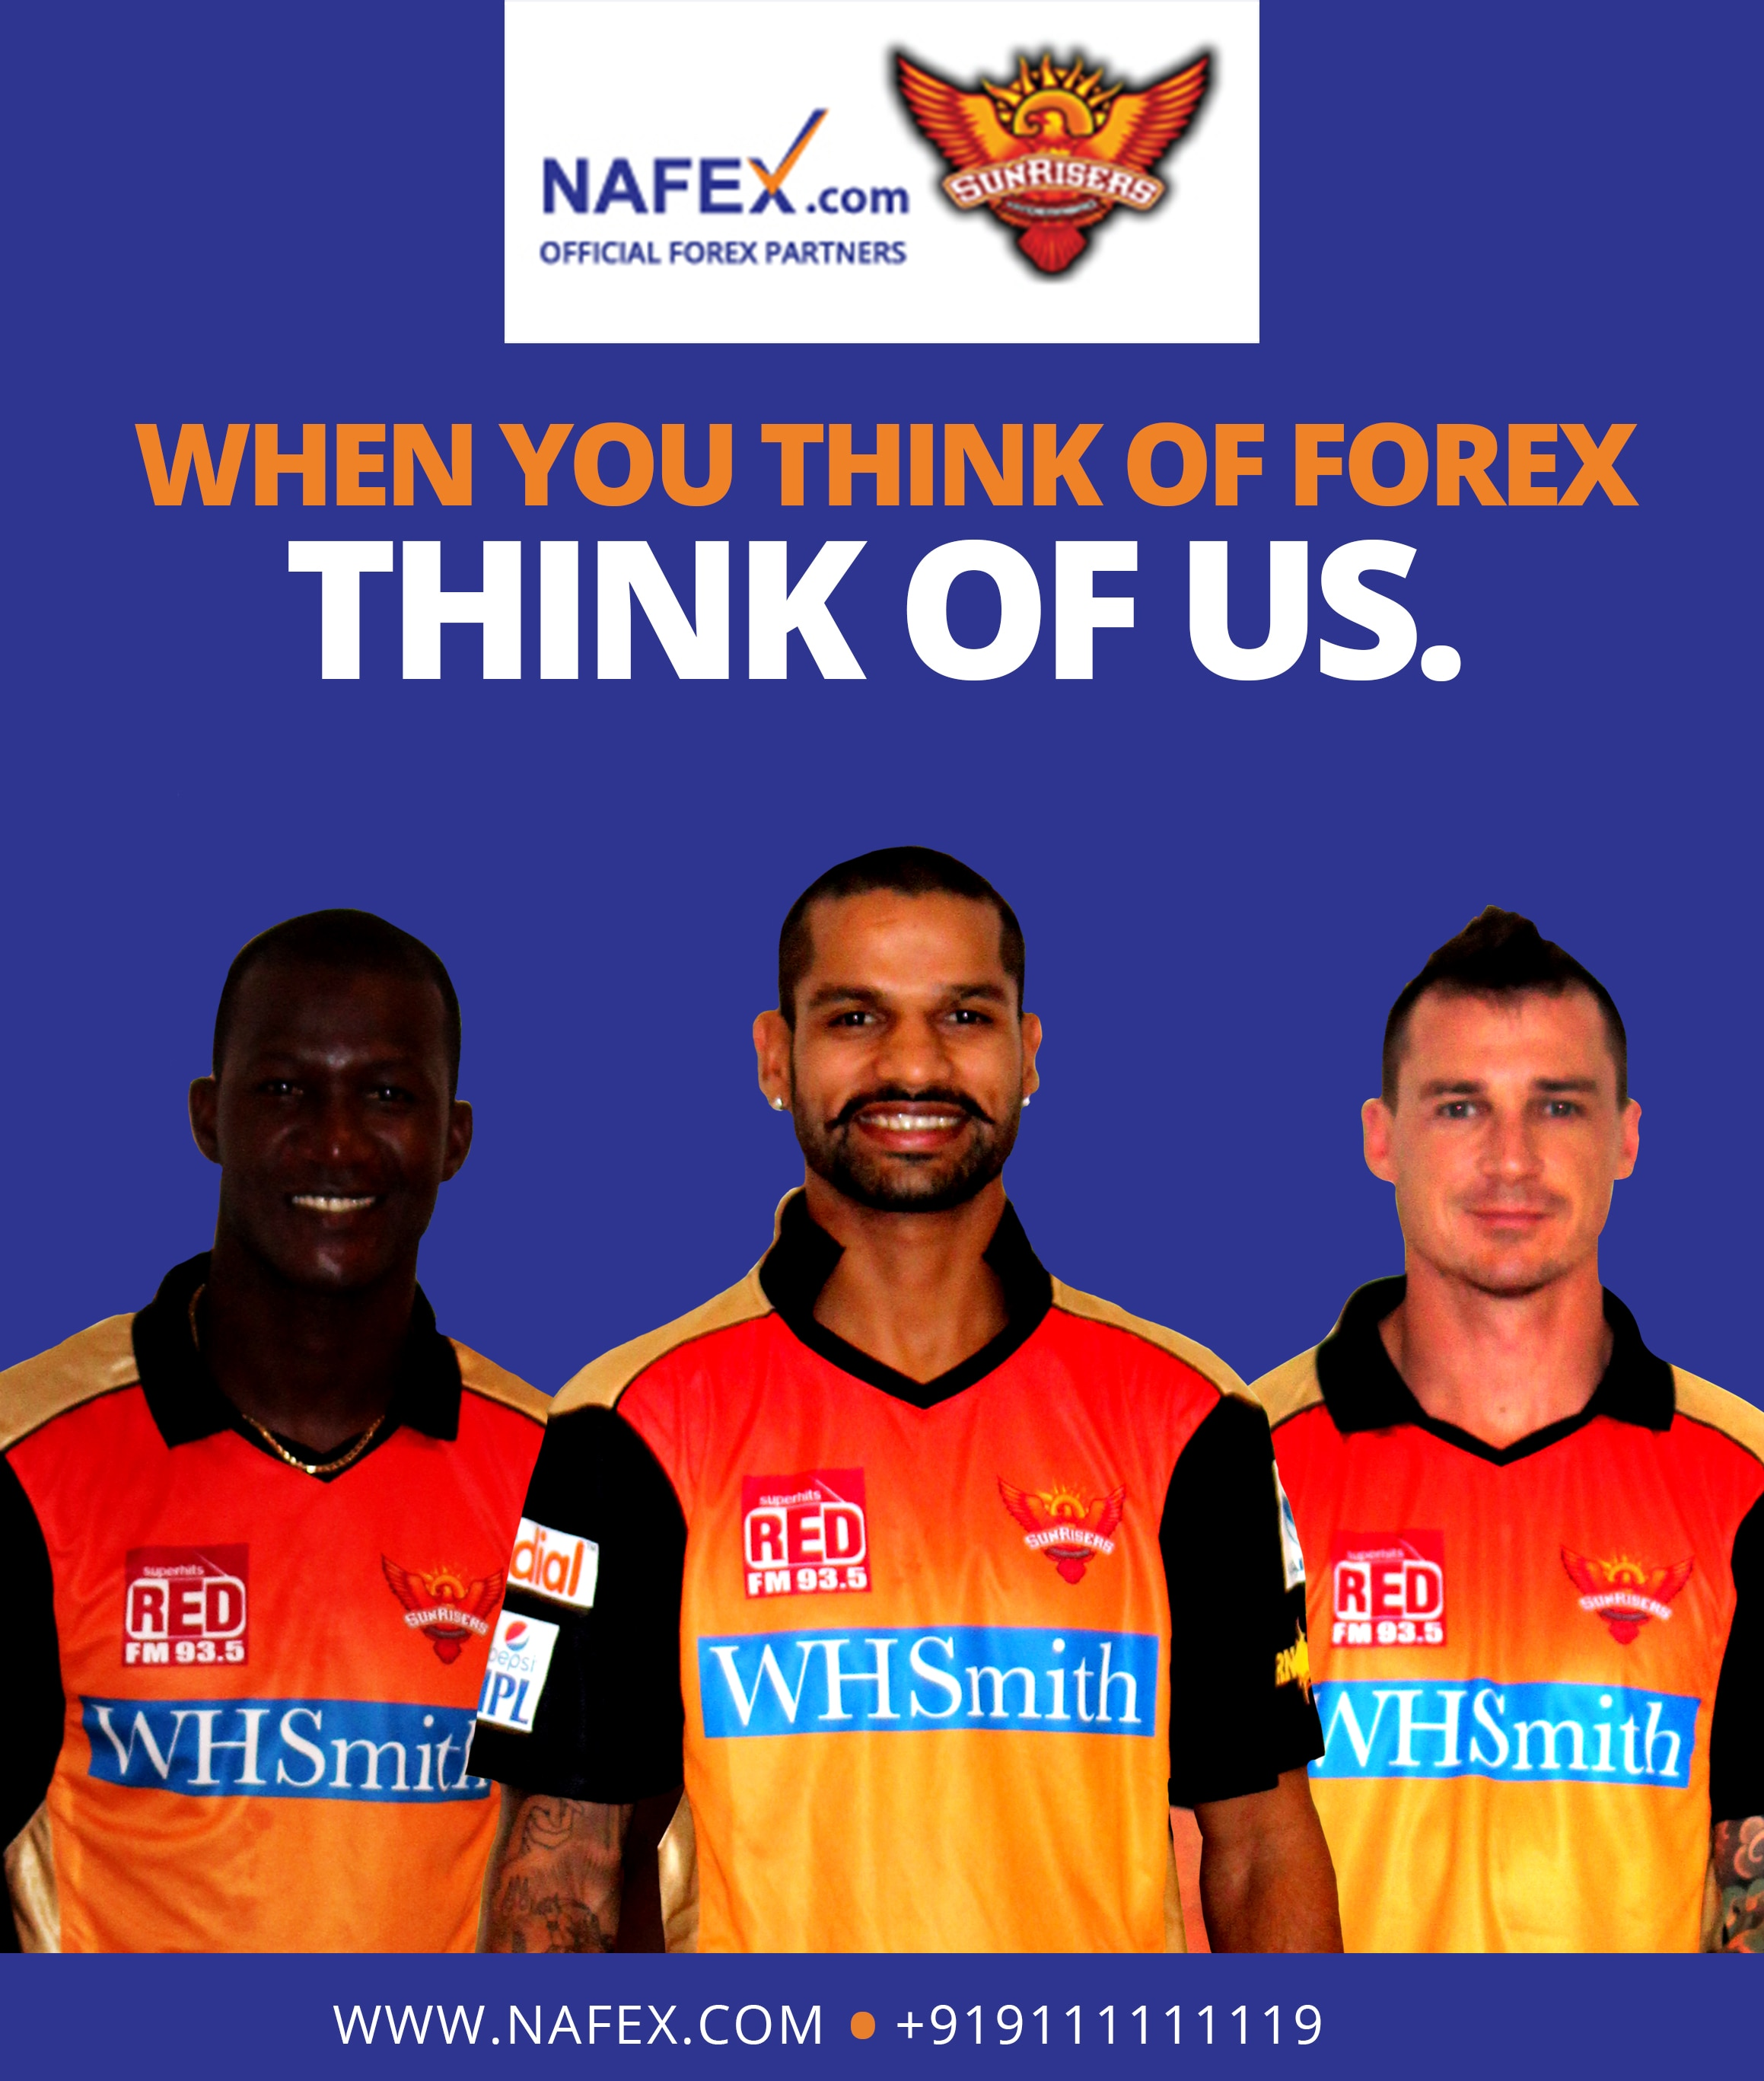 Nafex - Saraspur Foreign Currency Exchange Dealers Agents Saraspur, Online Travellers Cheque & Forex Prepaid Card